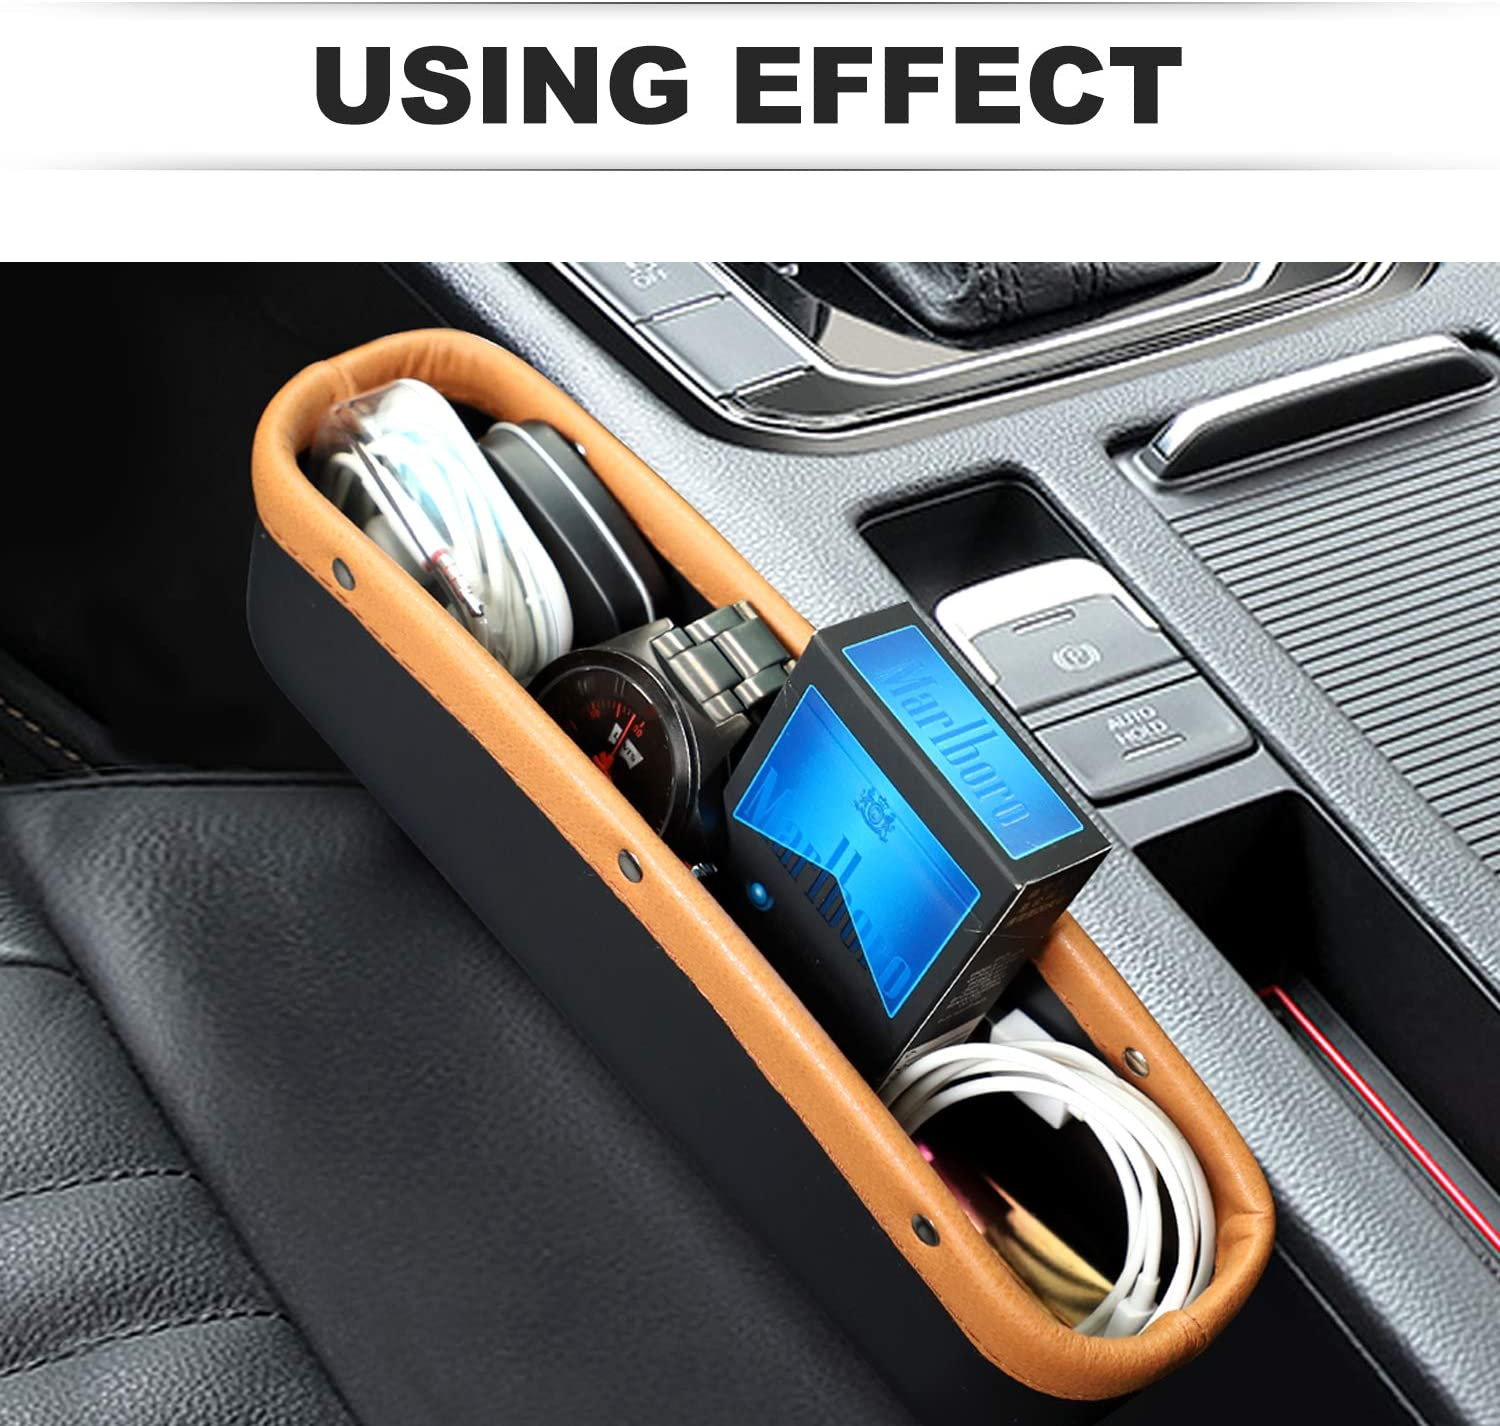 Brown Black HOUSE DAY Car Seat Pockets PU Leather Car Console Side Organizer Seat Gap Filler Catch Caddy with Non-Slip Mat for Phone Key Card Coin Case Car Interior Accessories 2 Pack